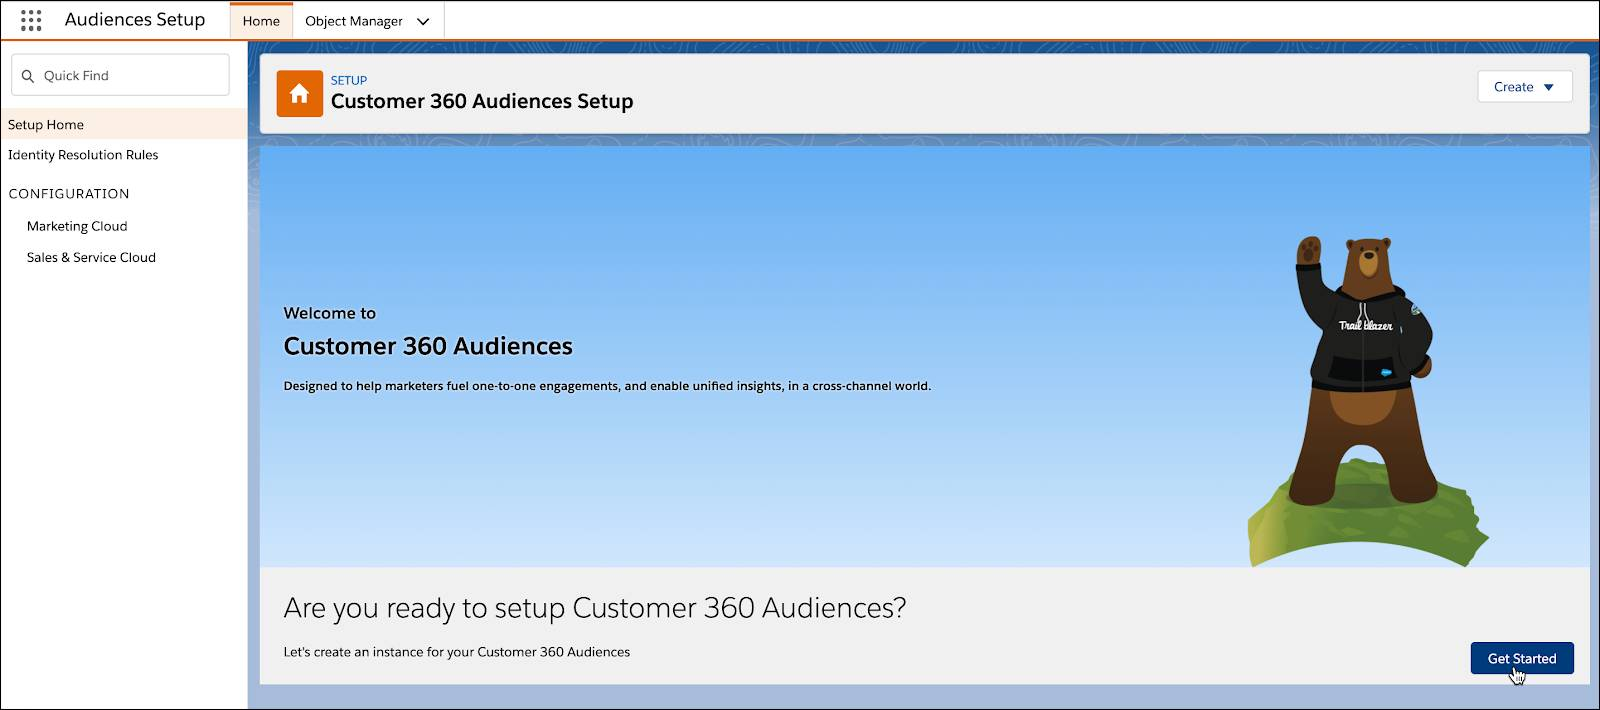 Get Started button selected from Audiences Setup page.